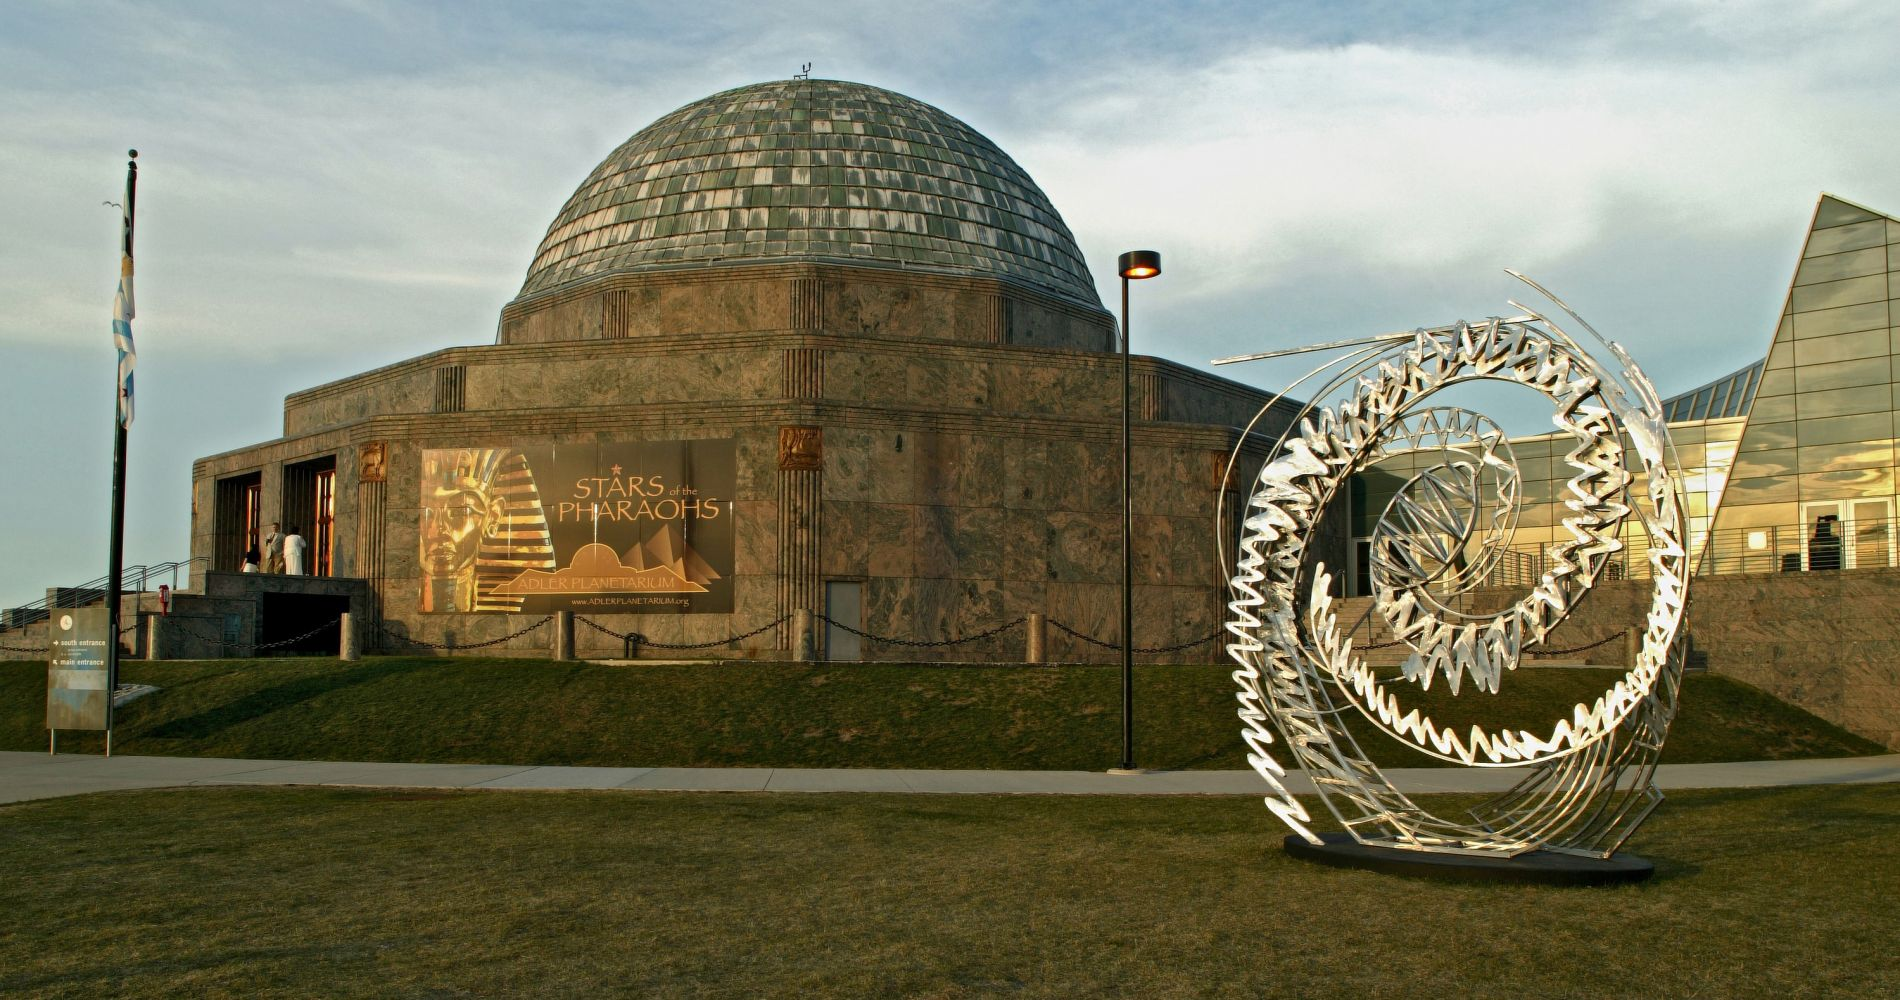 The Best Chicago including Adler Planetarium for Two